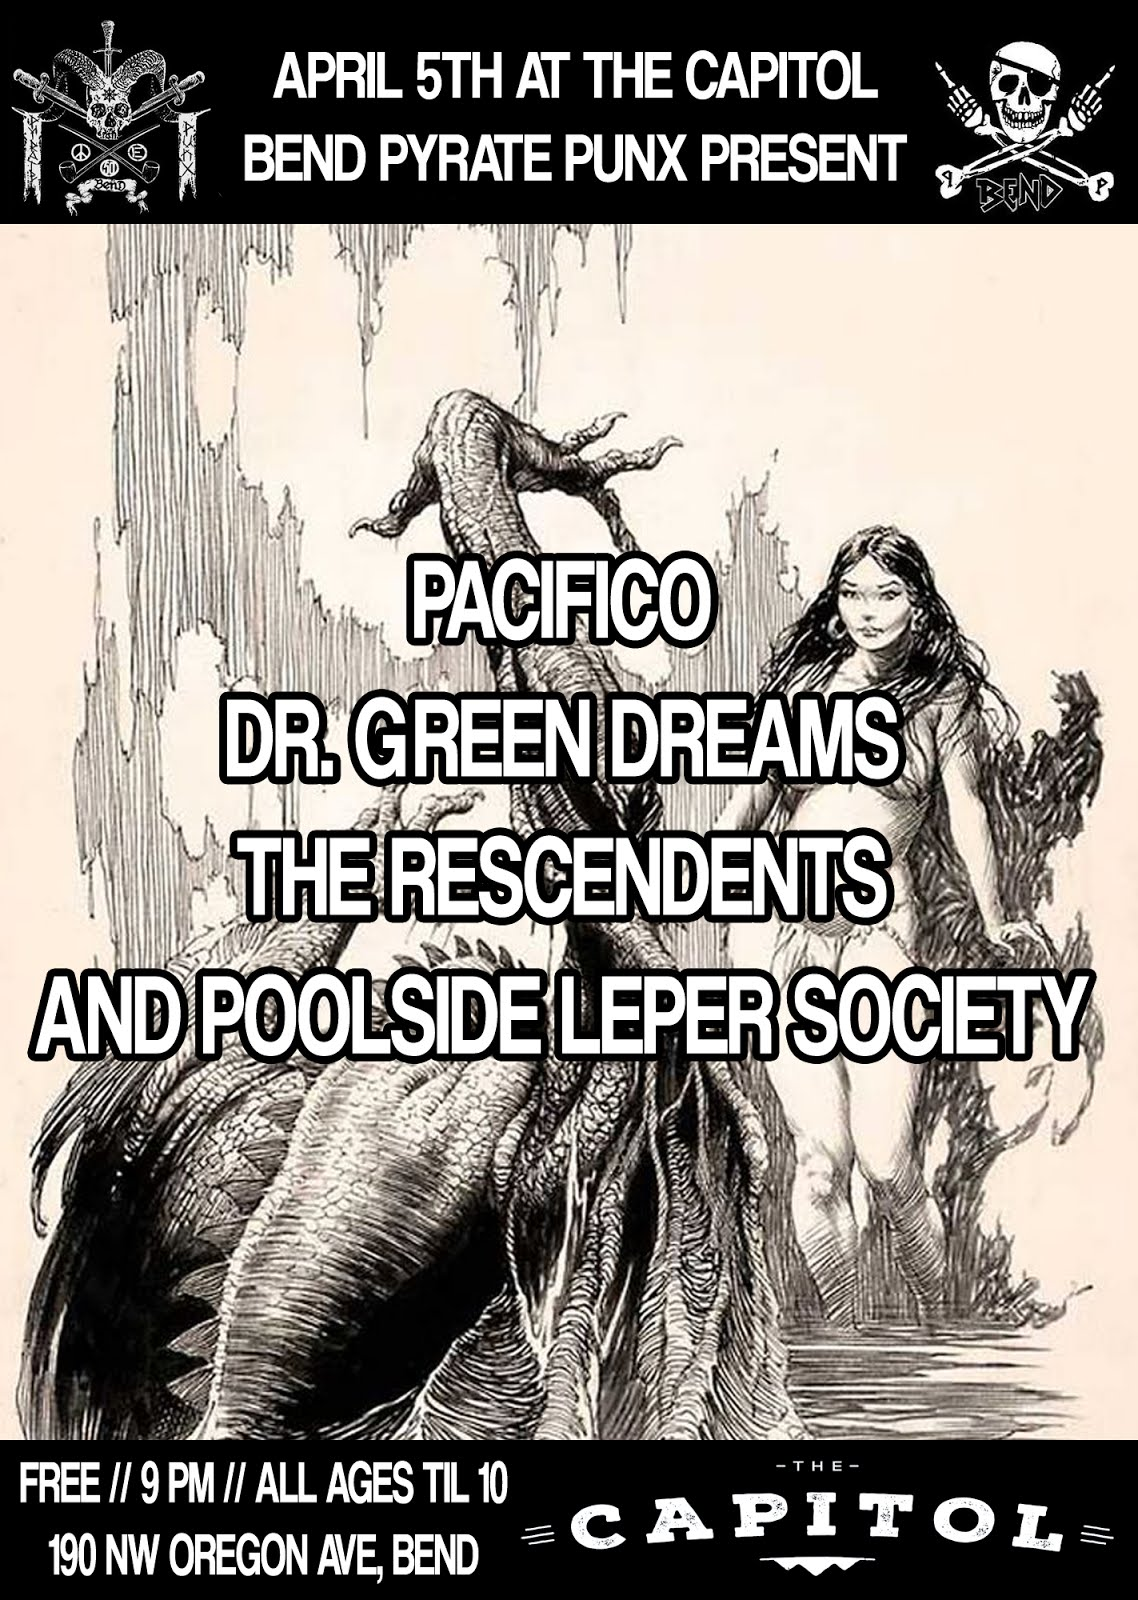 PACIFICO, DR. GREEN DREAMS, THE RESCENDENTS, AND POOLSIDE LEPER SOCIETY